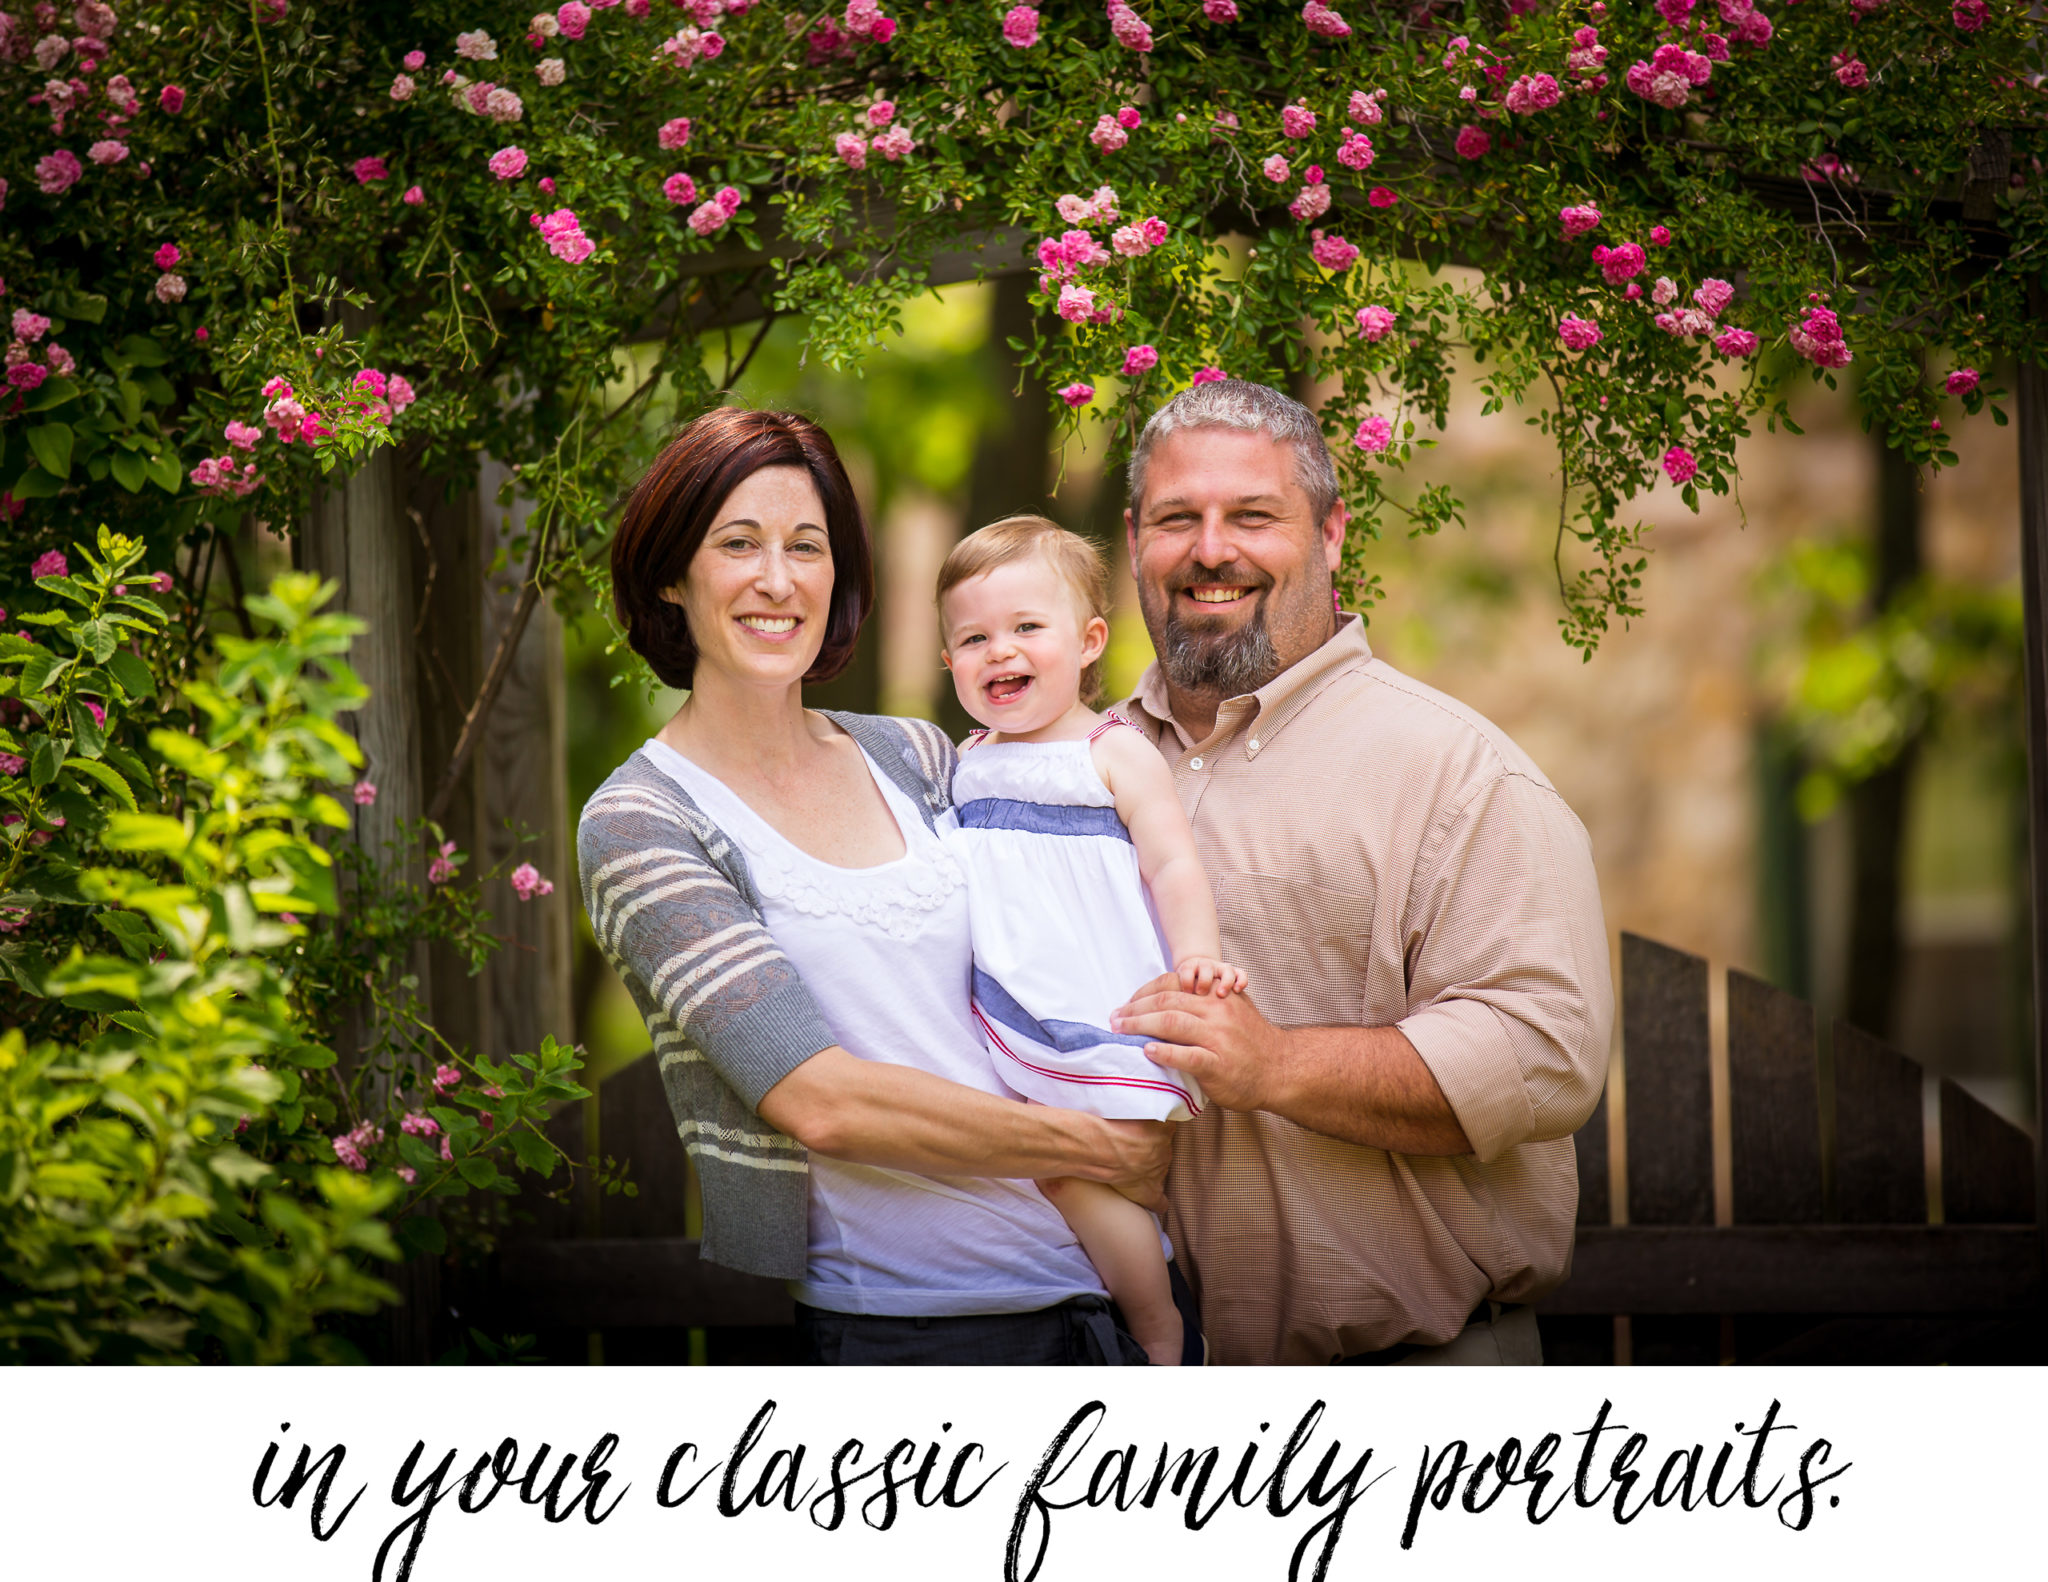 rhinehart-photography-2020-family-portrait-packages26